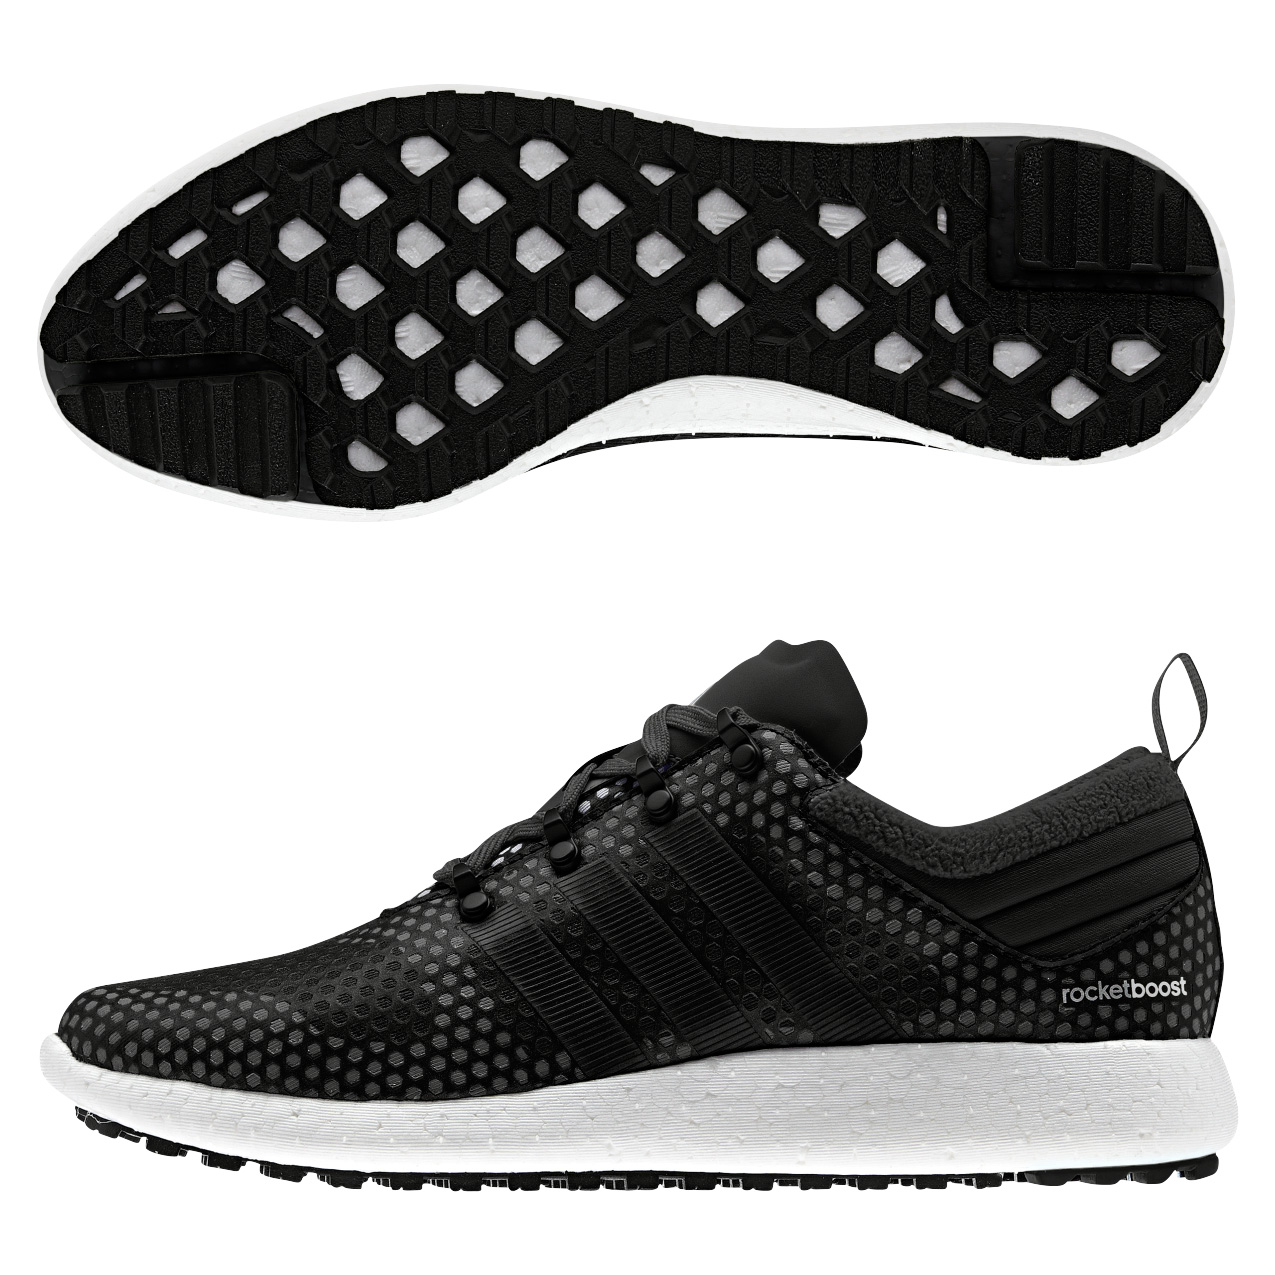 Adidas Climaheat Rocket Boost Trainers Black